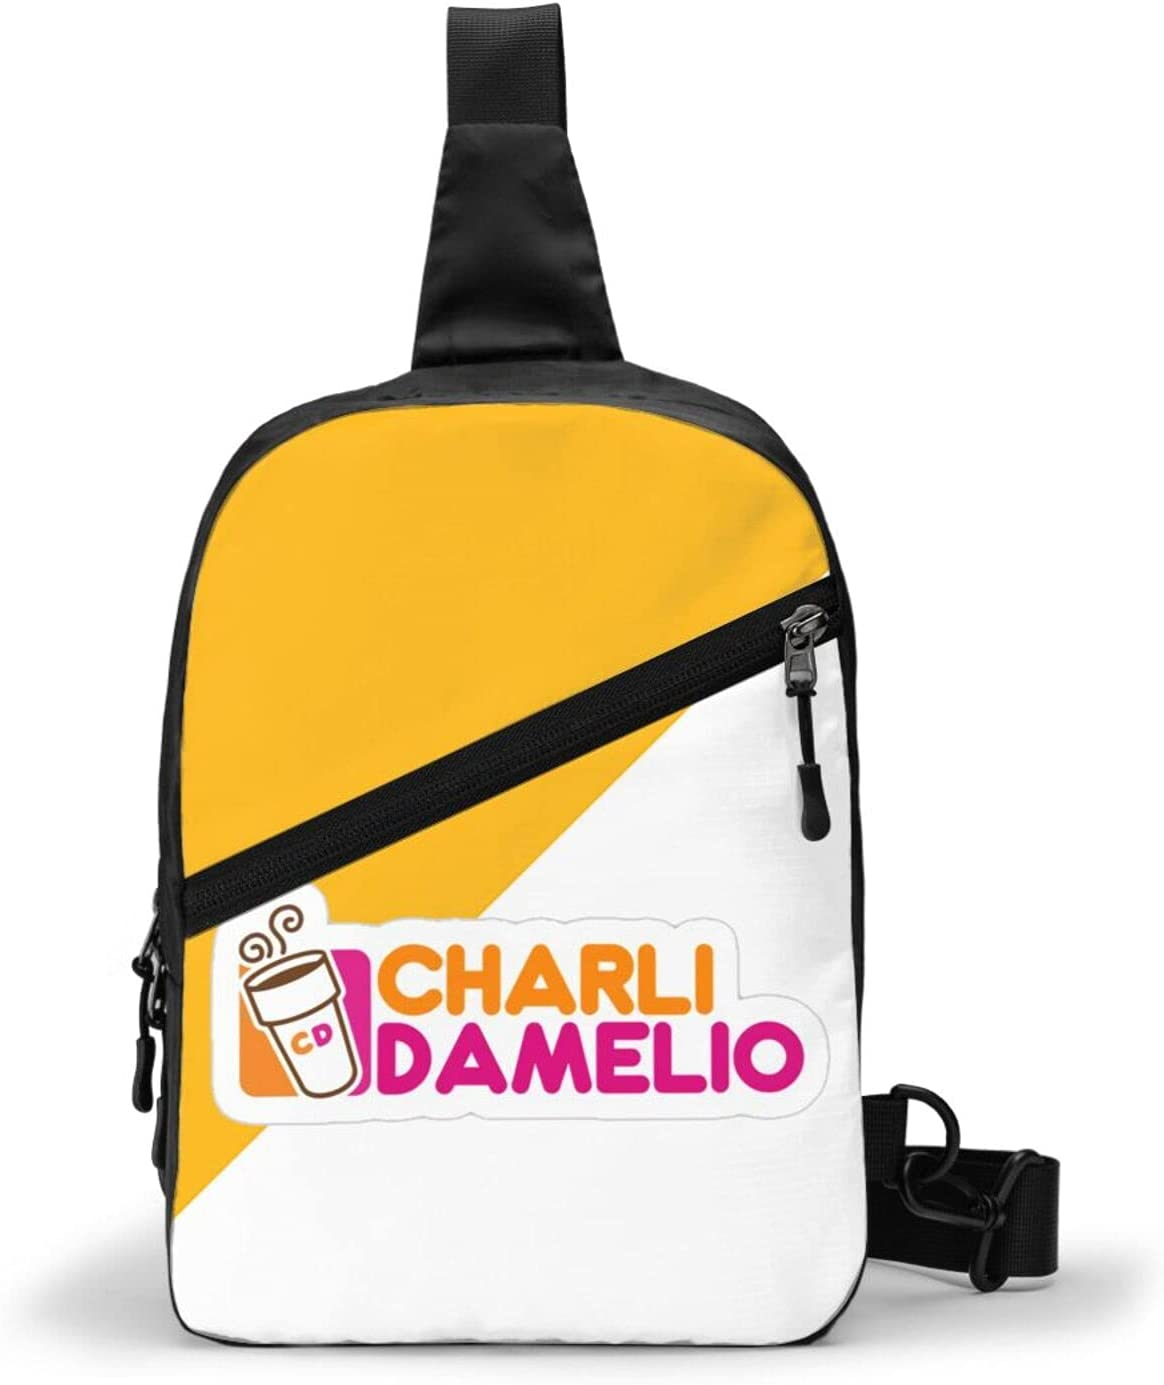 Charli Damelio Chest Sales New item of SALE items from new works Package Sling Large Bag Capacity Multipurpo